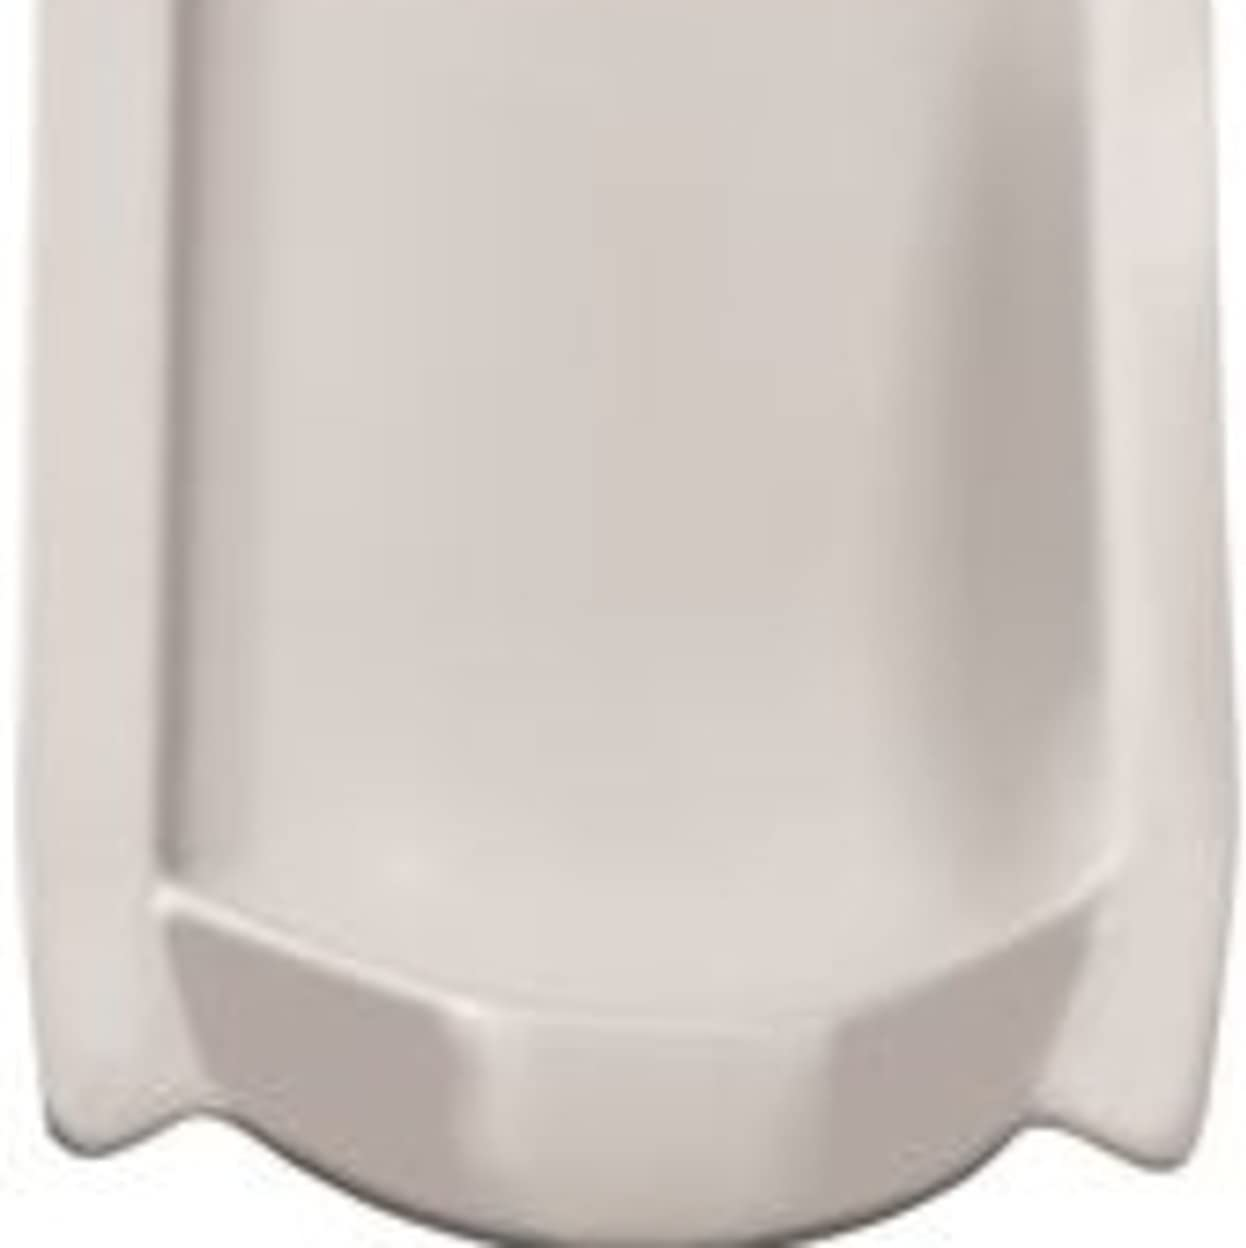 Sloan S1101009 1101009 Urinal one-size Free shipping on posting reviews Super sale